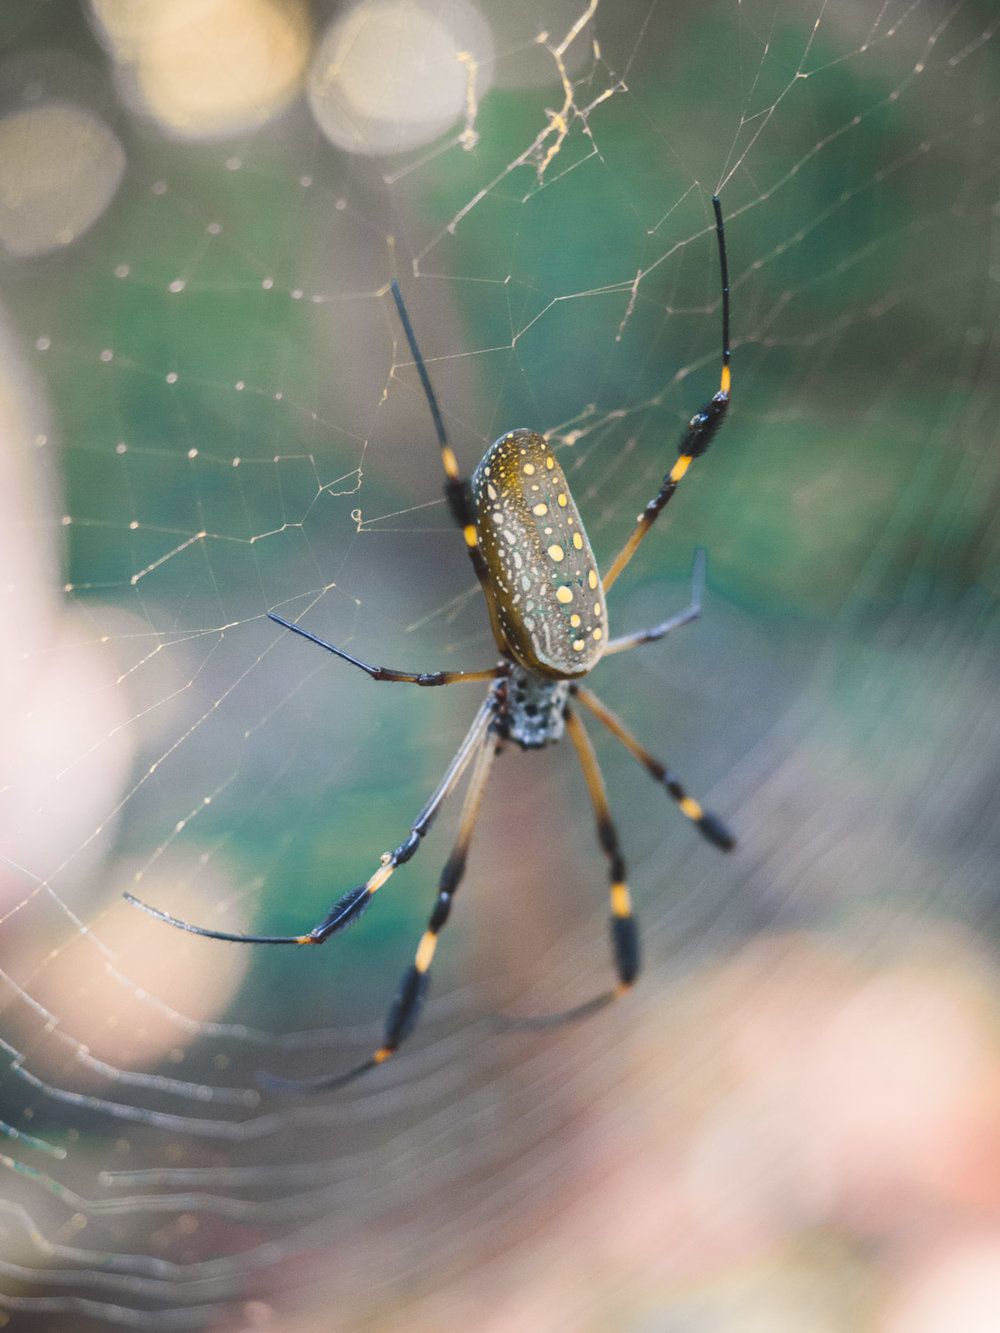 Golden orb spider in costa rica